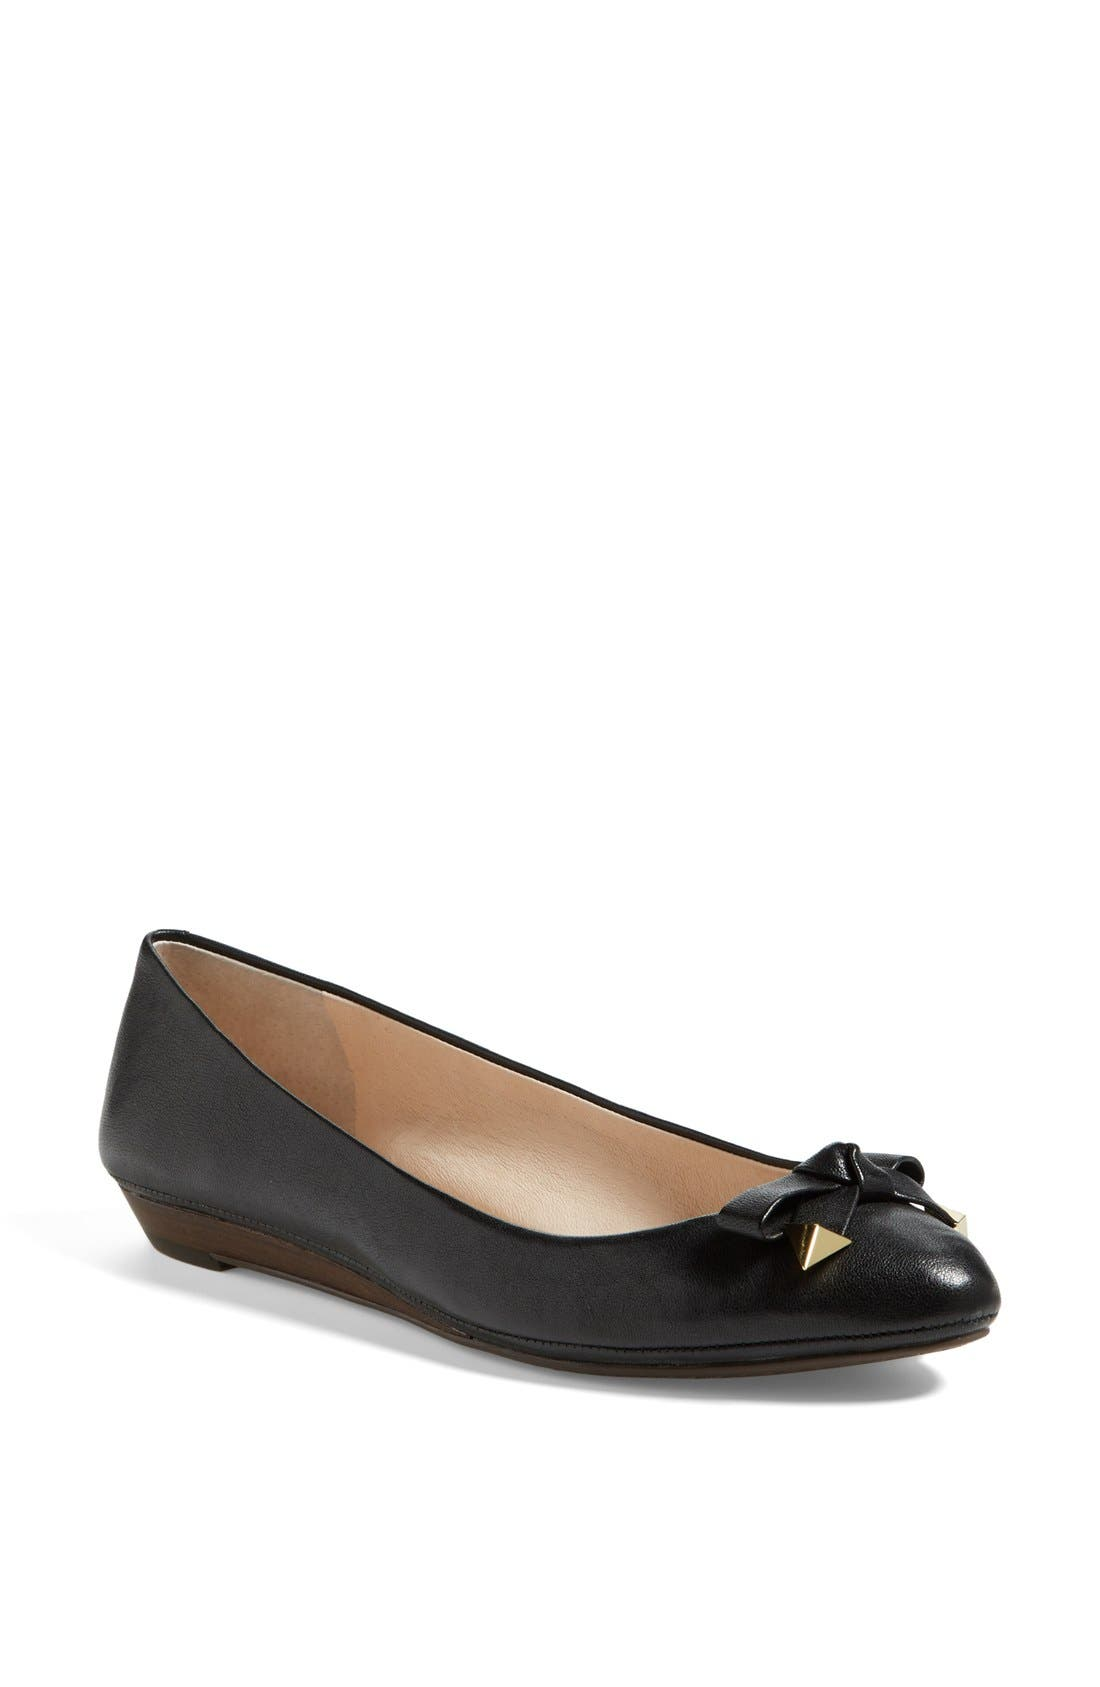 Main Image - Louise et Cie 'Azalya' Mini Wedge Flat (Women)